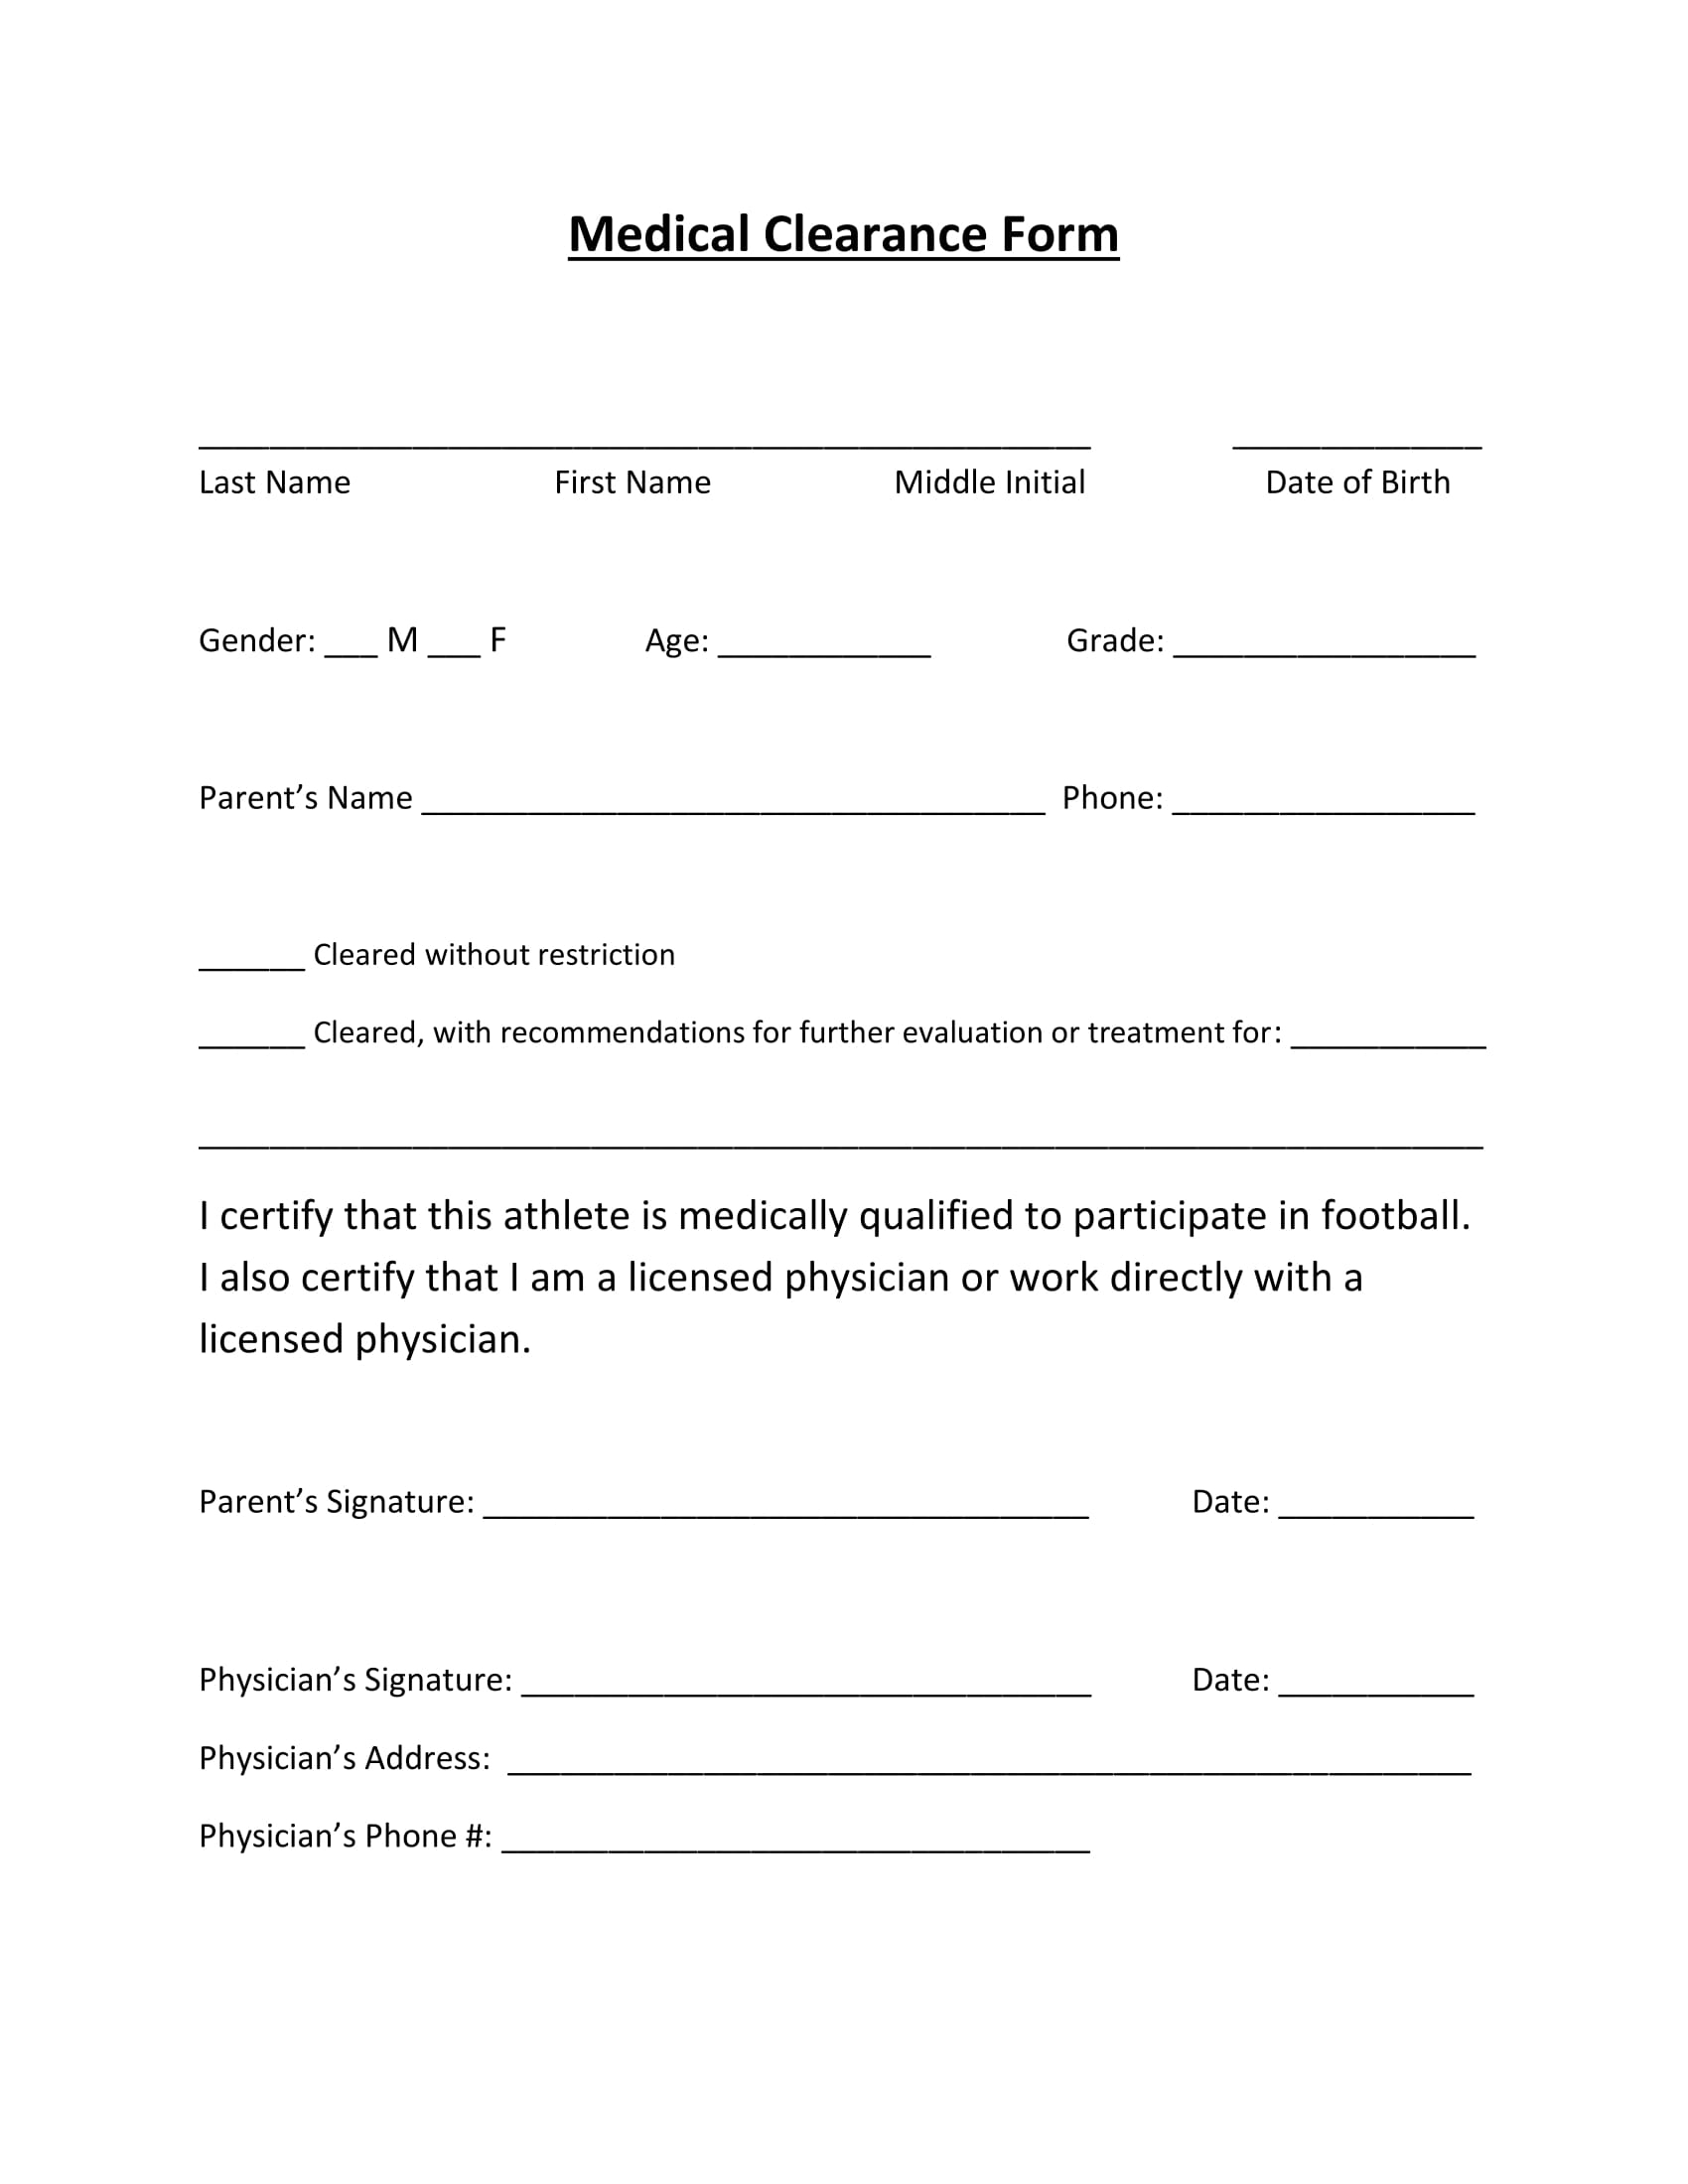 Blank Medical Clearance Form